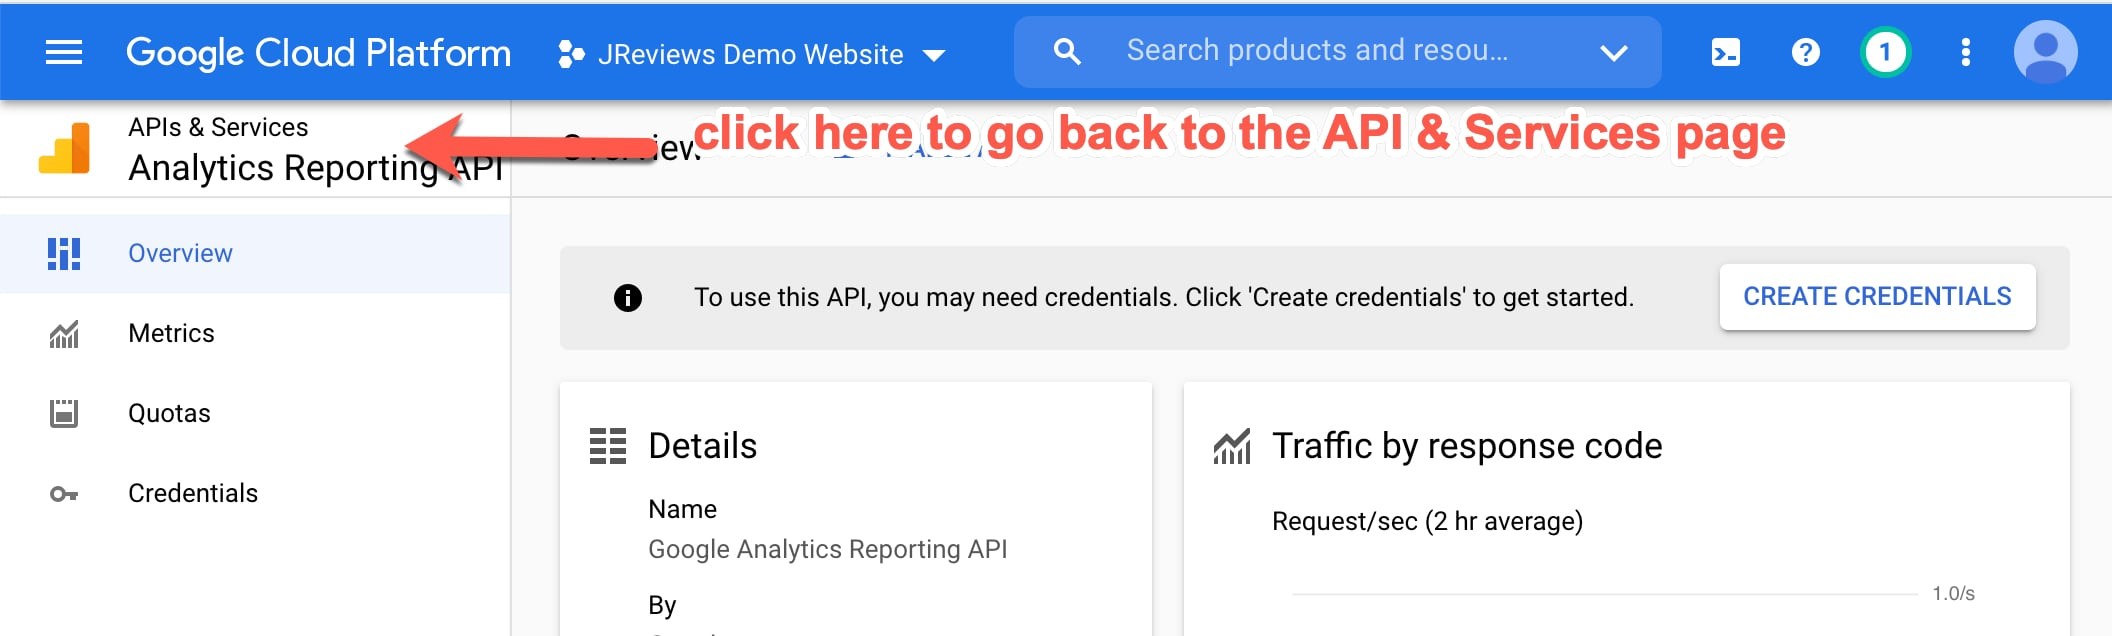 Go back to the project's API & Services page